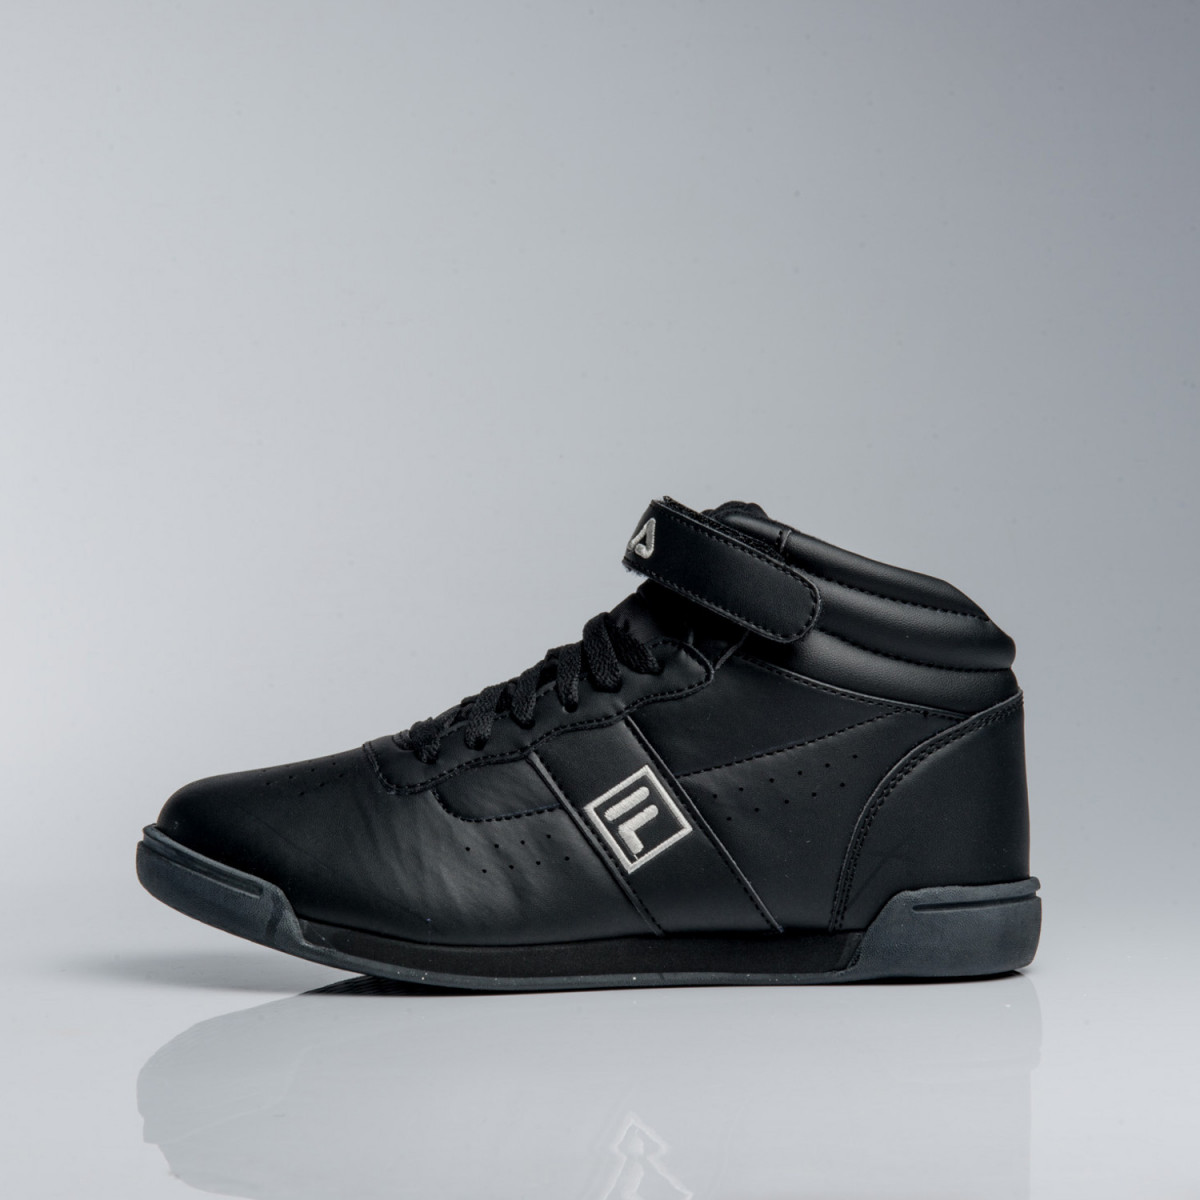 ZAPATILLAS FILA 16 HIGH II W